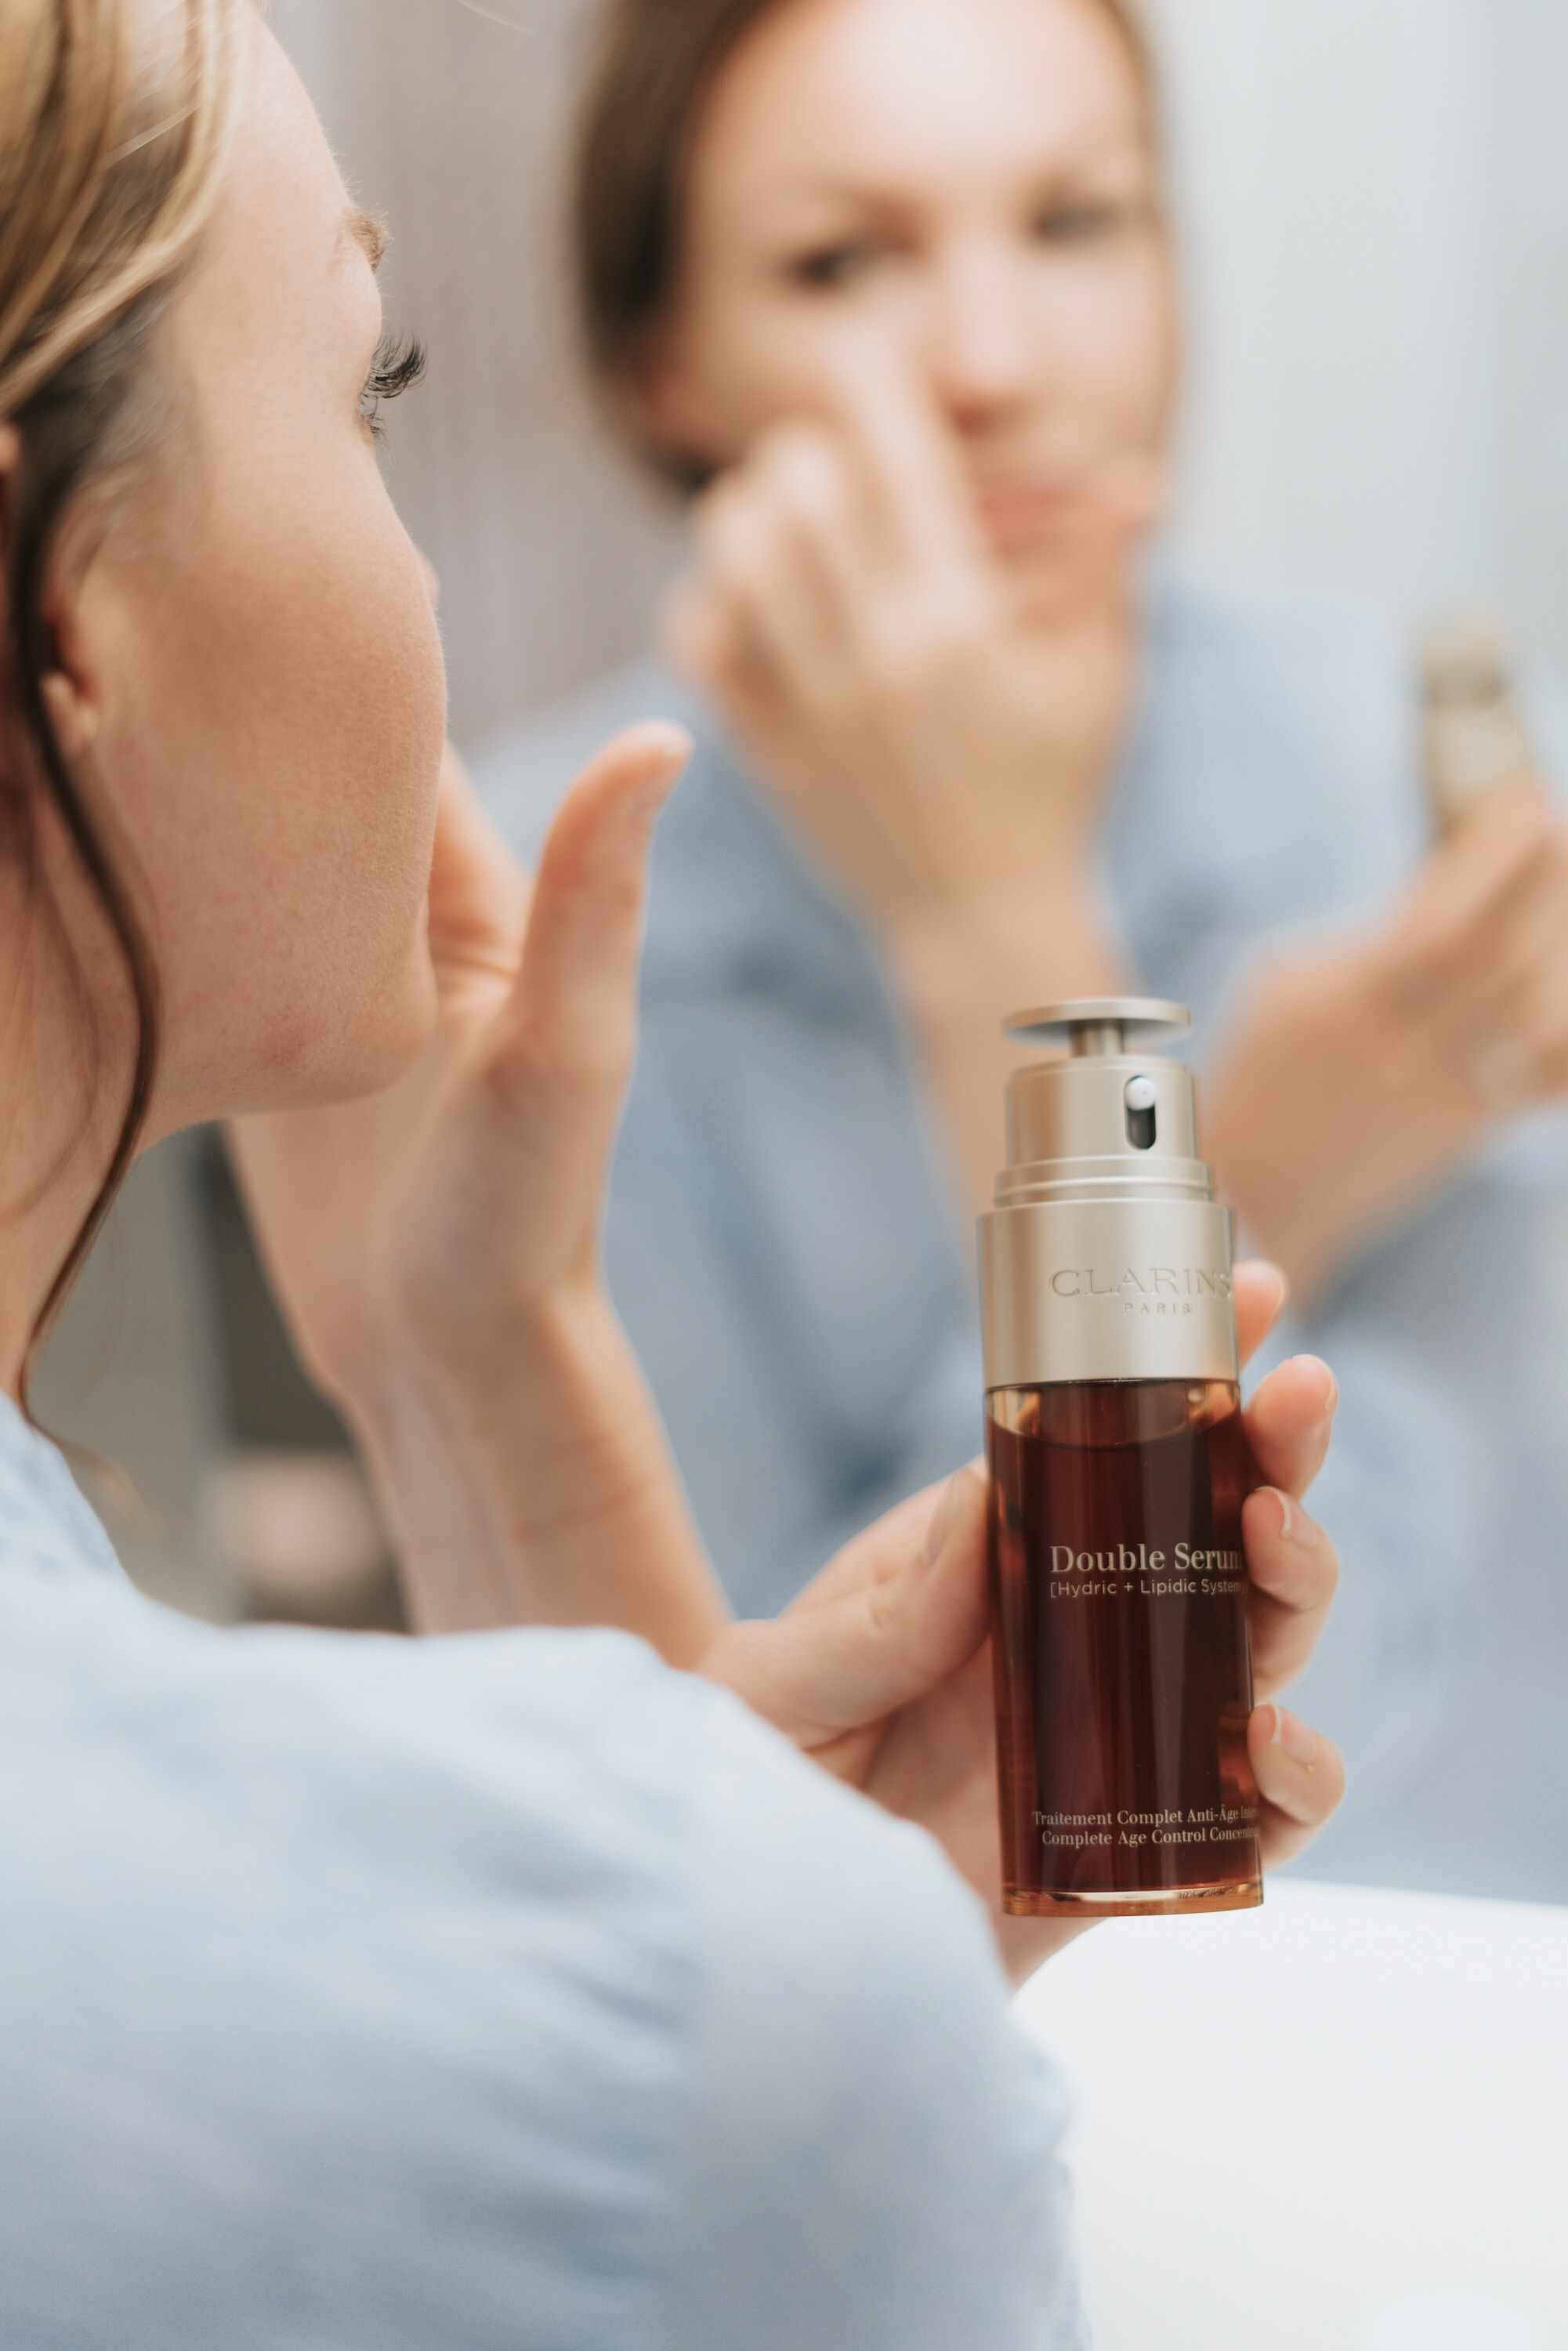 Clarins Double Serum is magical on dry skin.